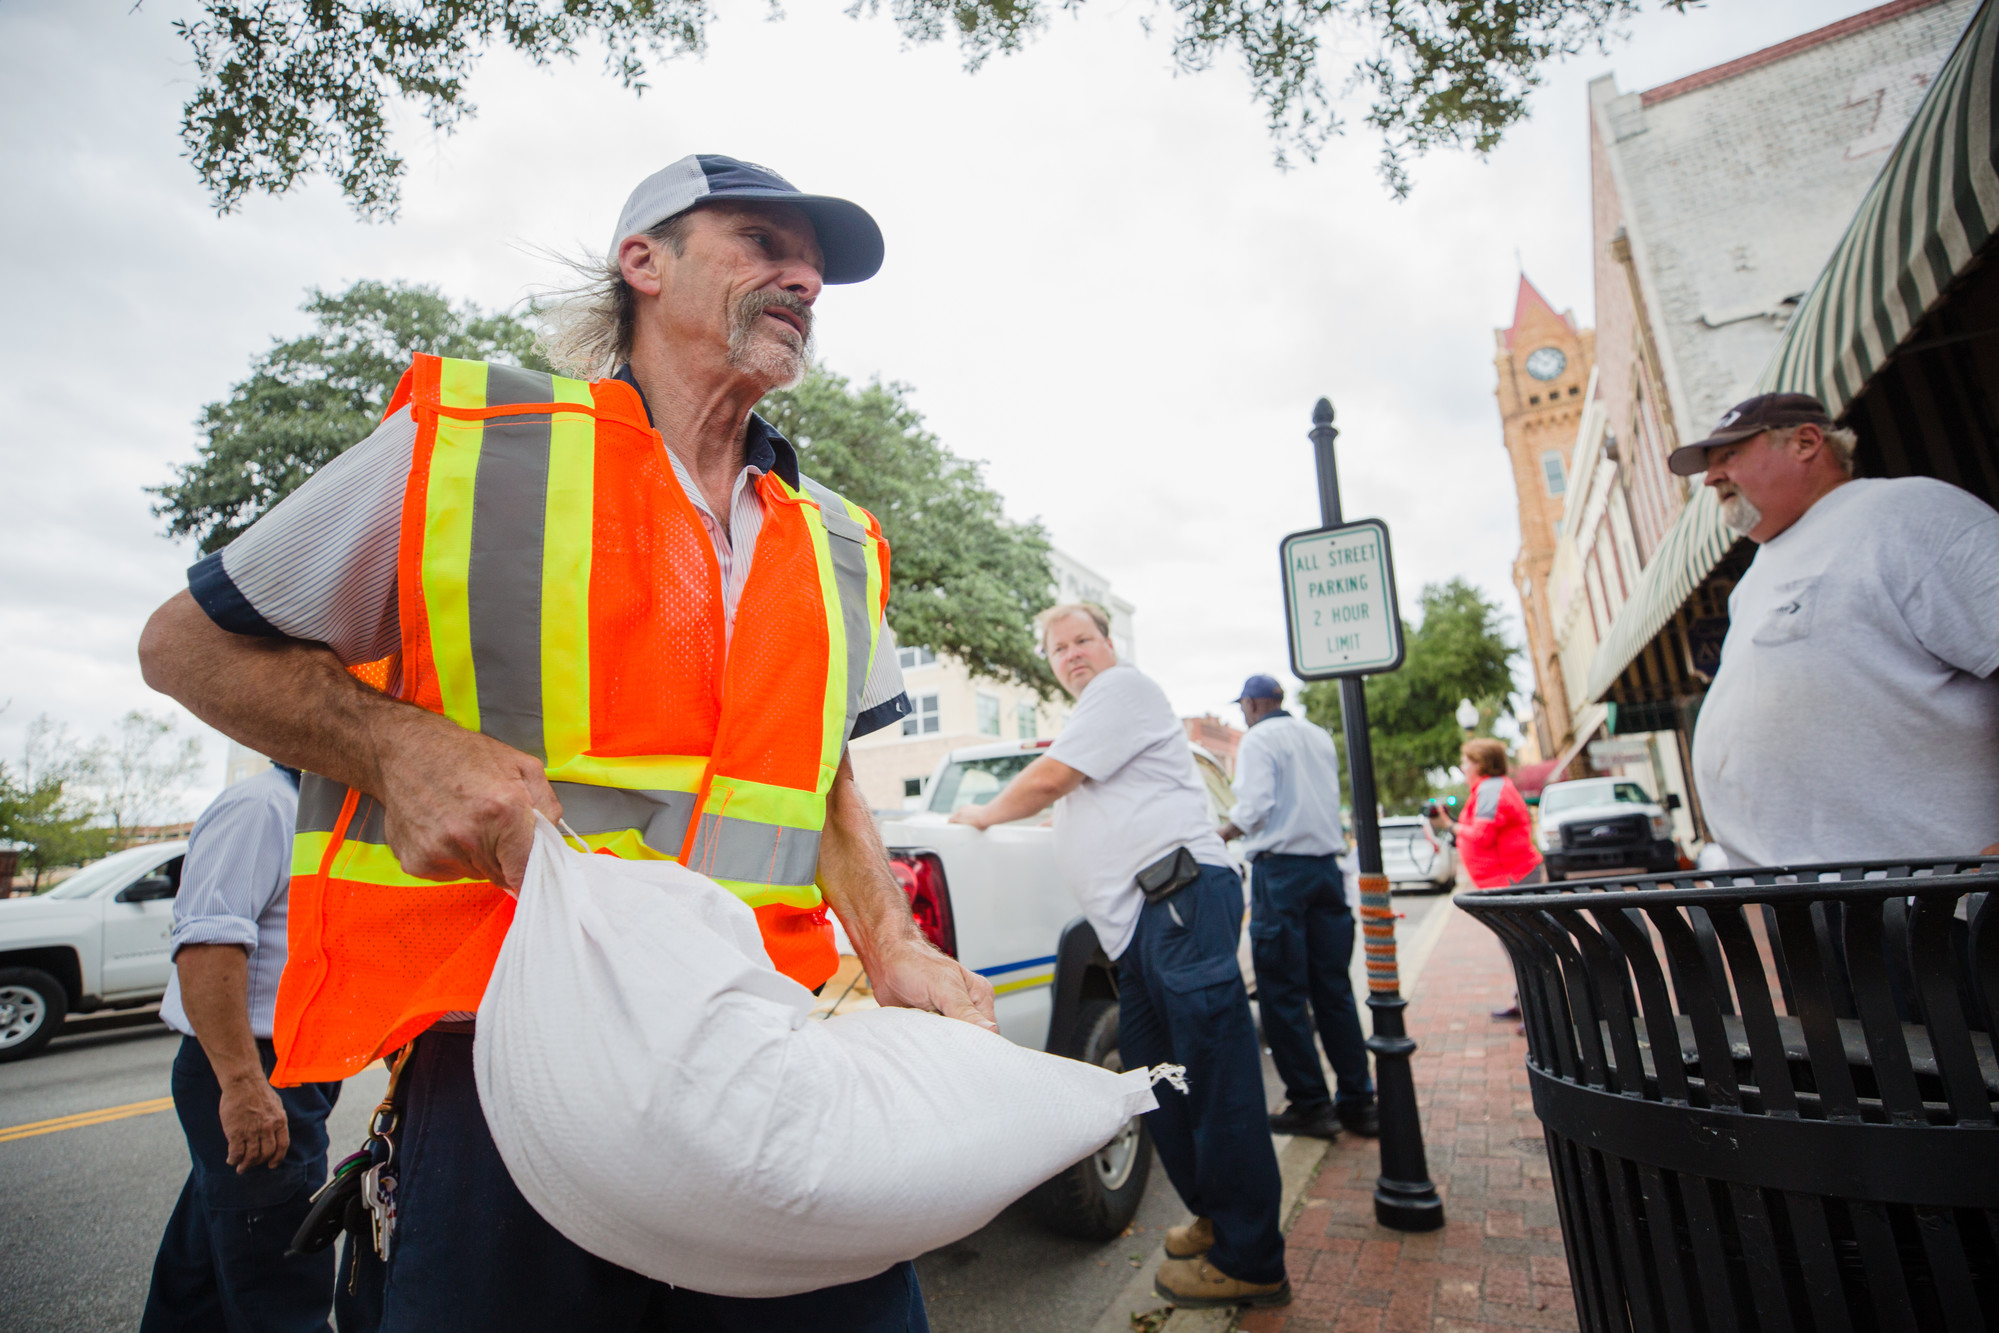 Jeff Bremer helps load sandbags around businesses in downtown Sumter on Friday, Sept. 14 in preparation for Hurricane Florence.